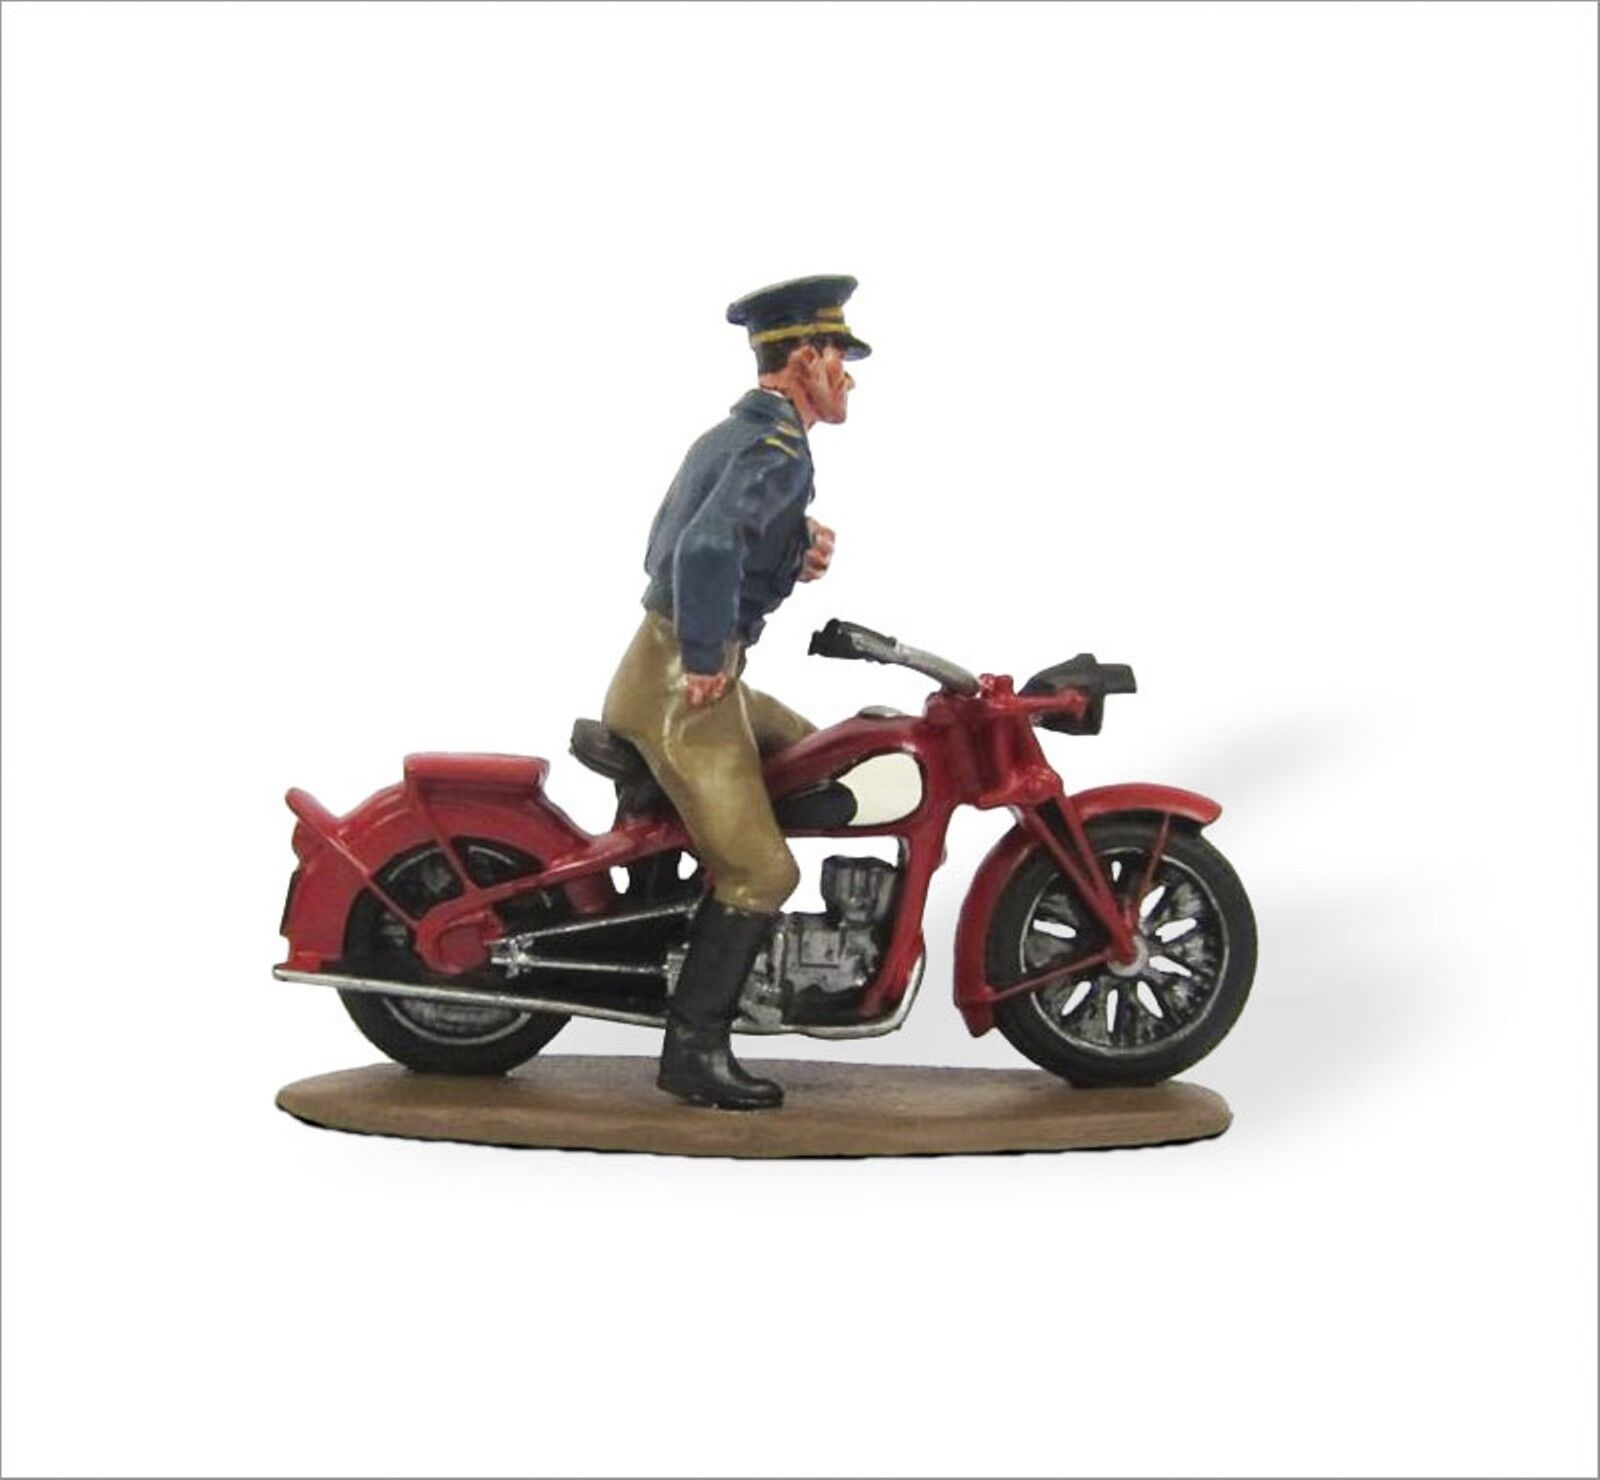 Triciclo Editores 1 32 WWII motorcycle Jawa 500 - Czech Air Force, France, 1940